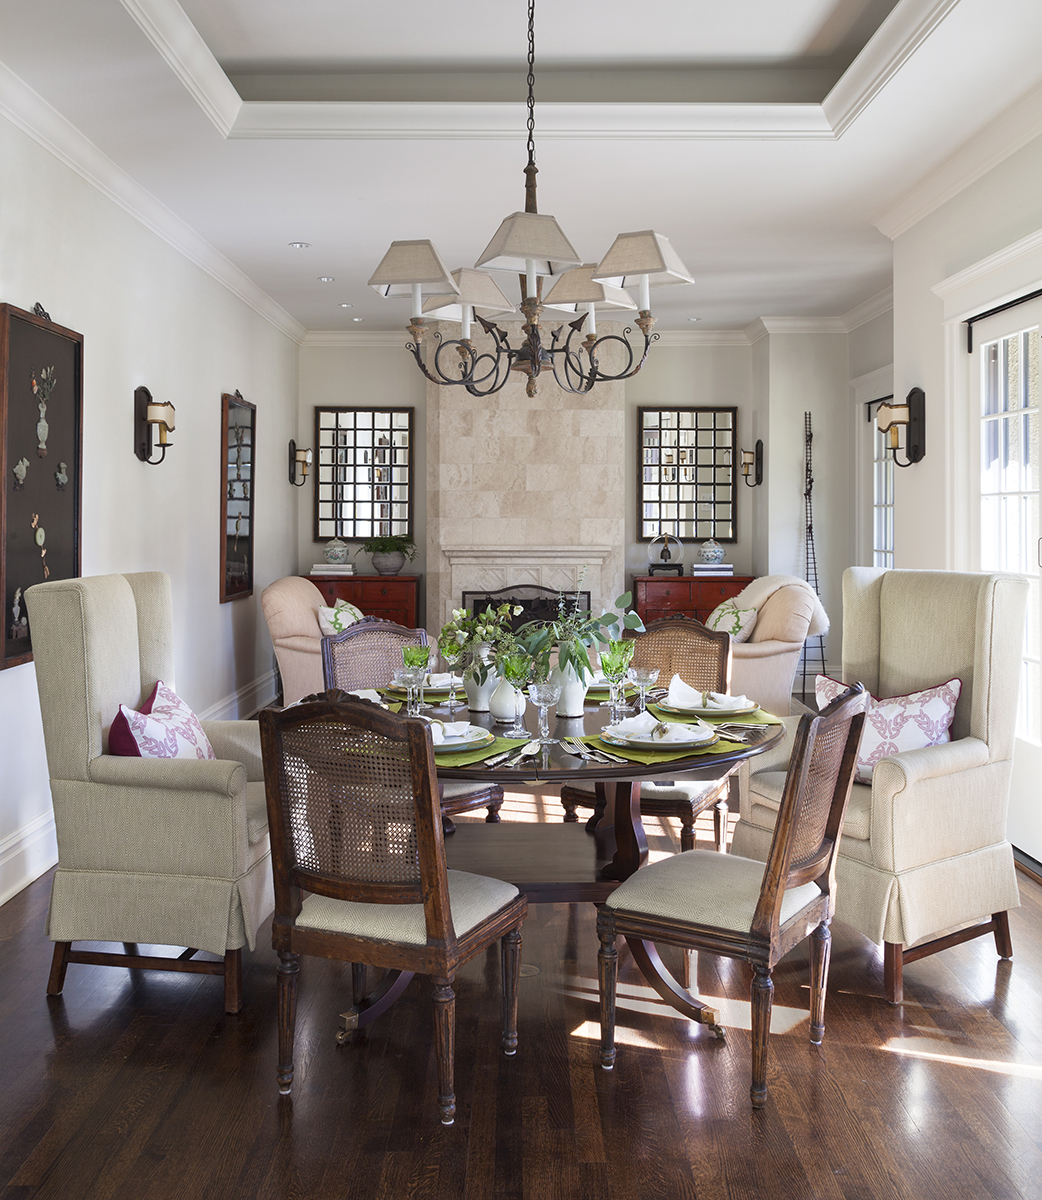 traditional interior design breakfast table and family room